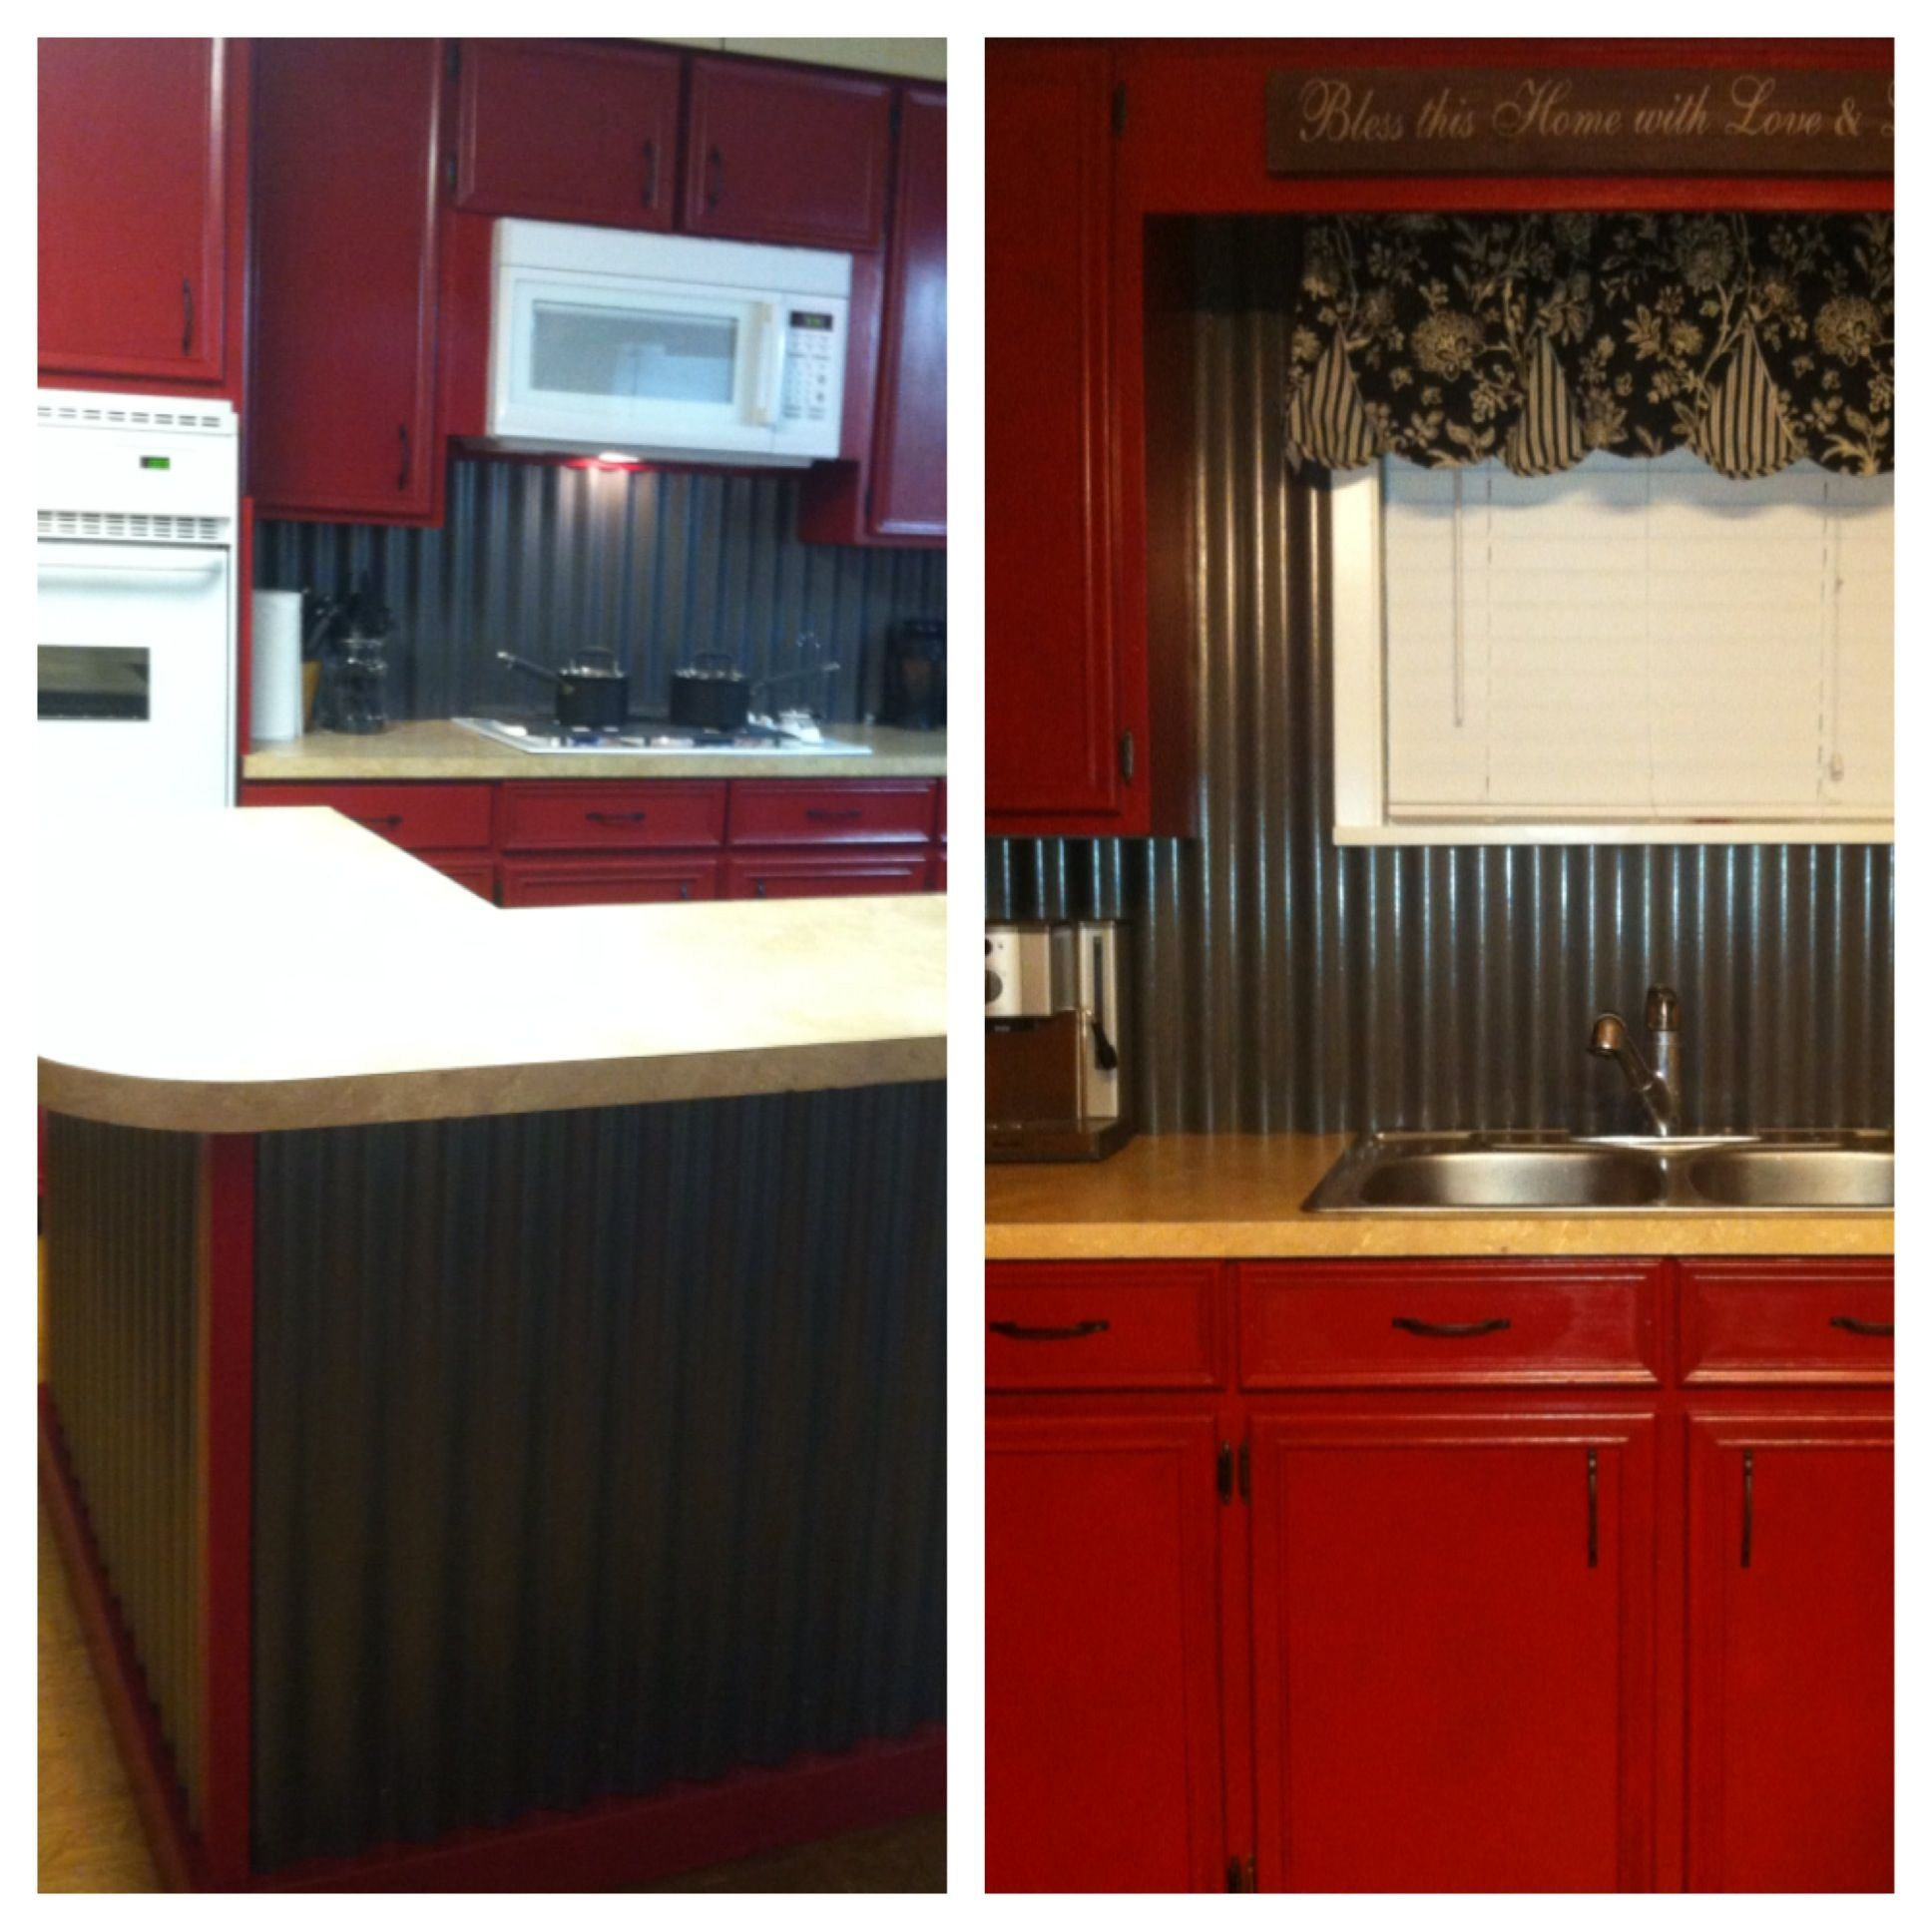 - Corrugated Tin Backsplash & Island W/ Barn Red Cabinets. Our DIY